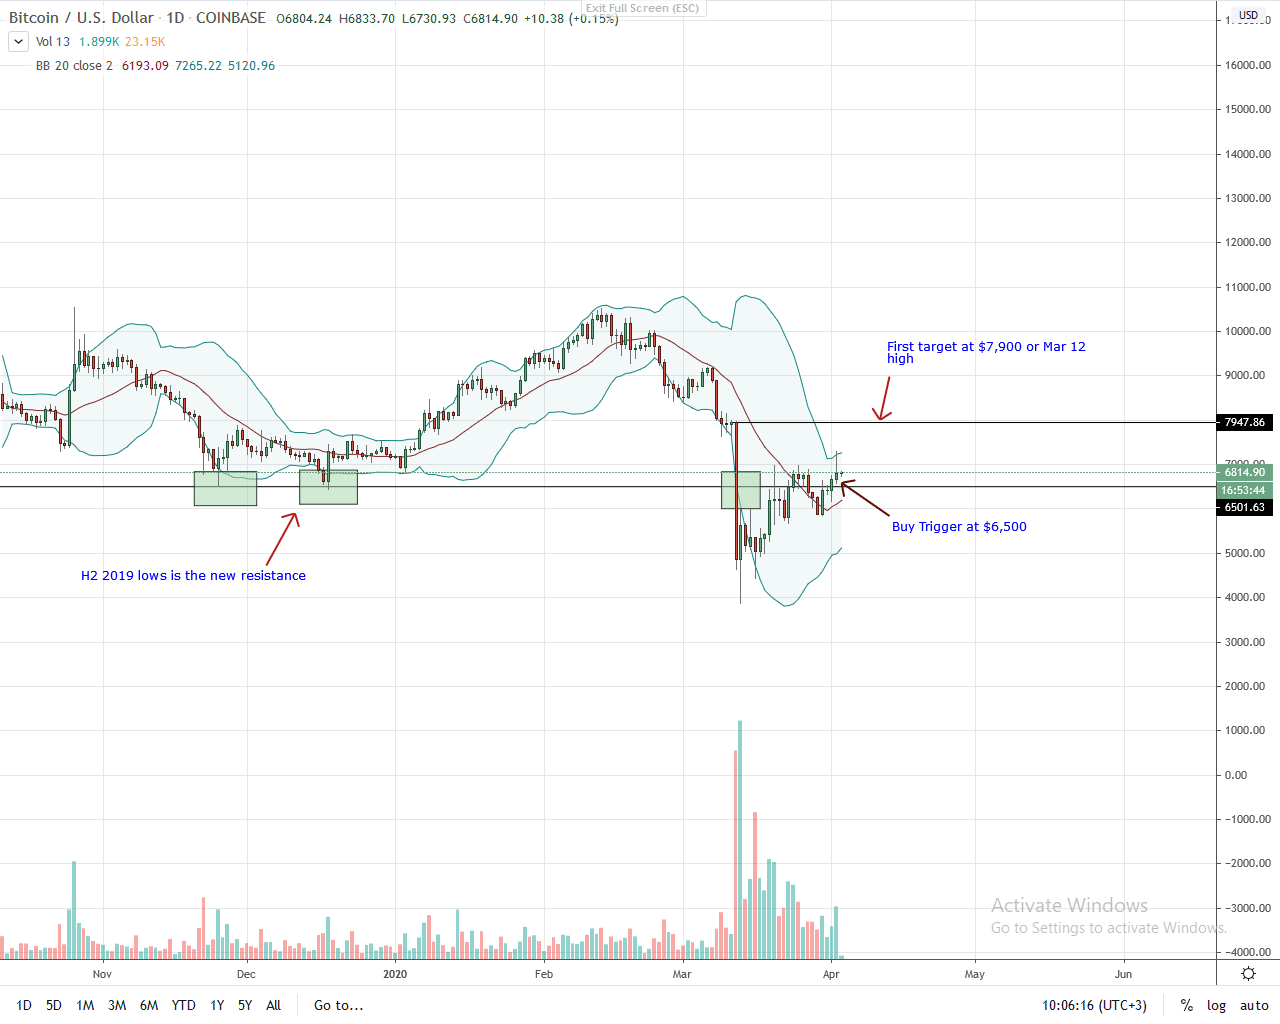 Bitcoin Daily Chart for Apr 3